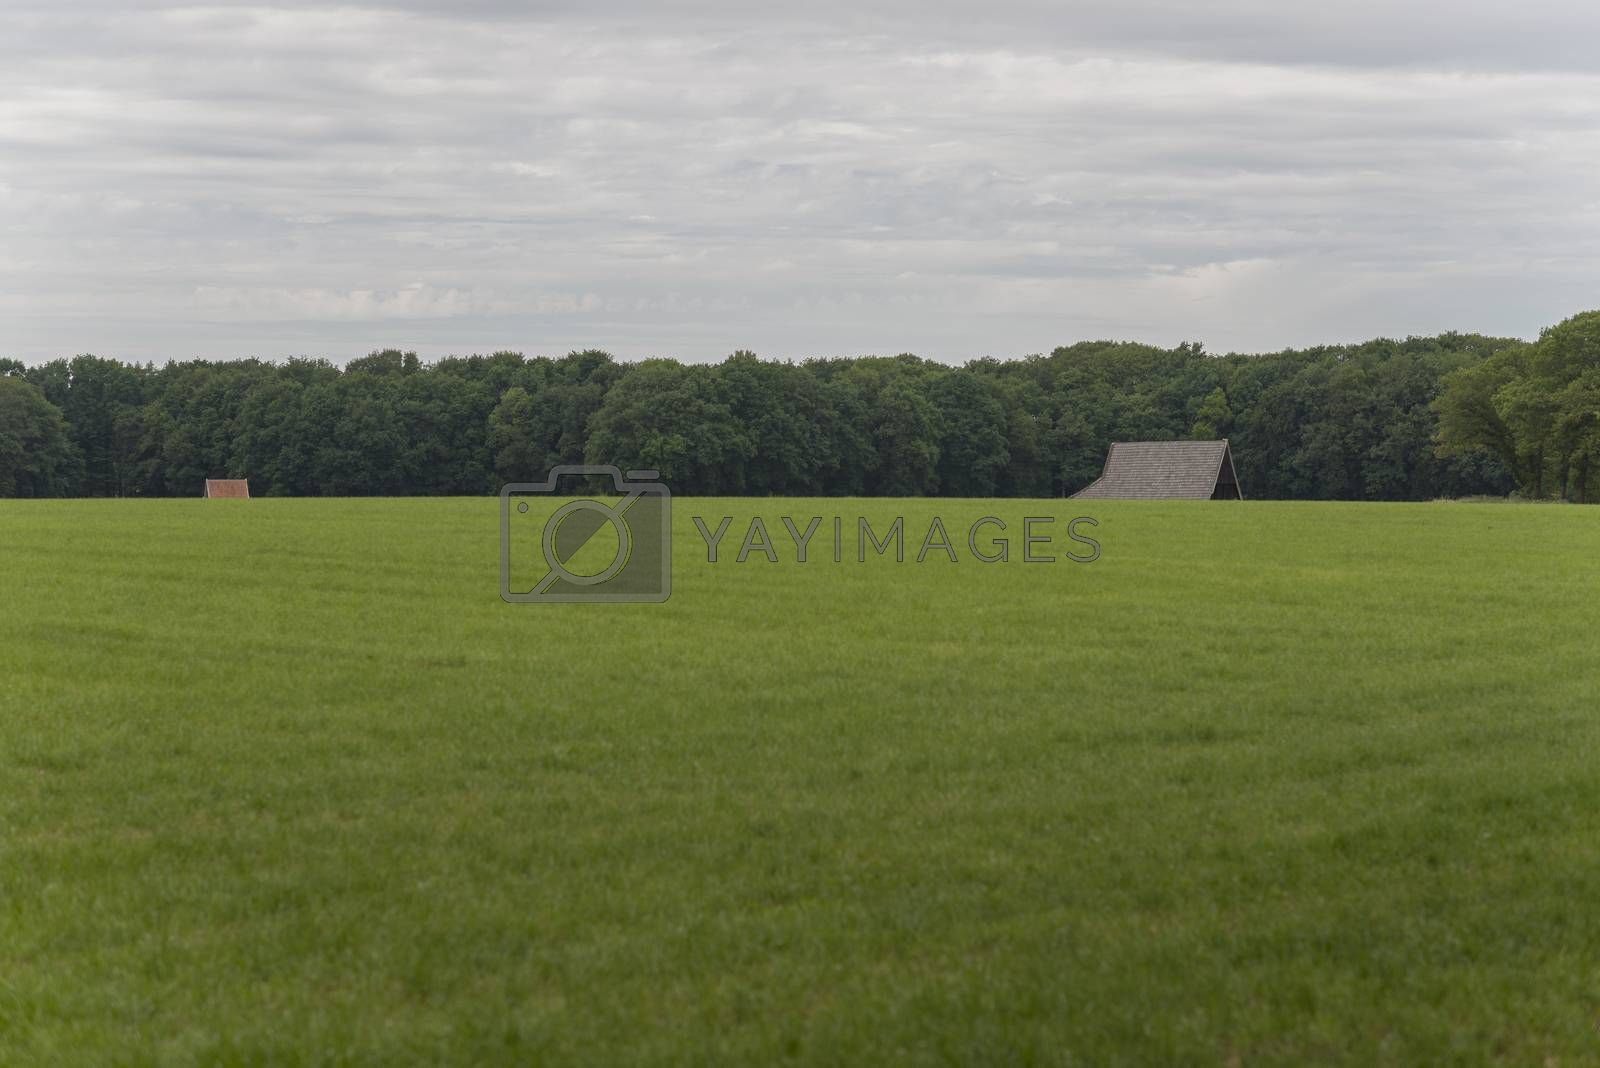 Characteristic half-open farmlands in the Netherlands  by Tofotografie